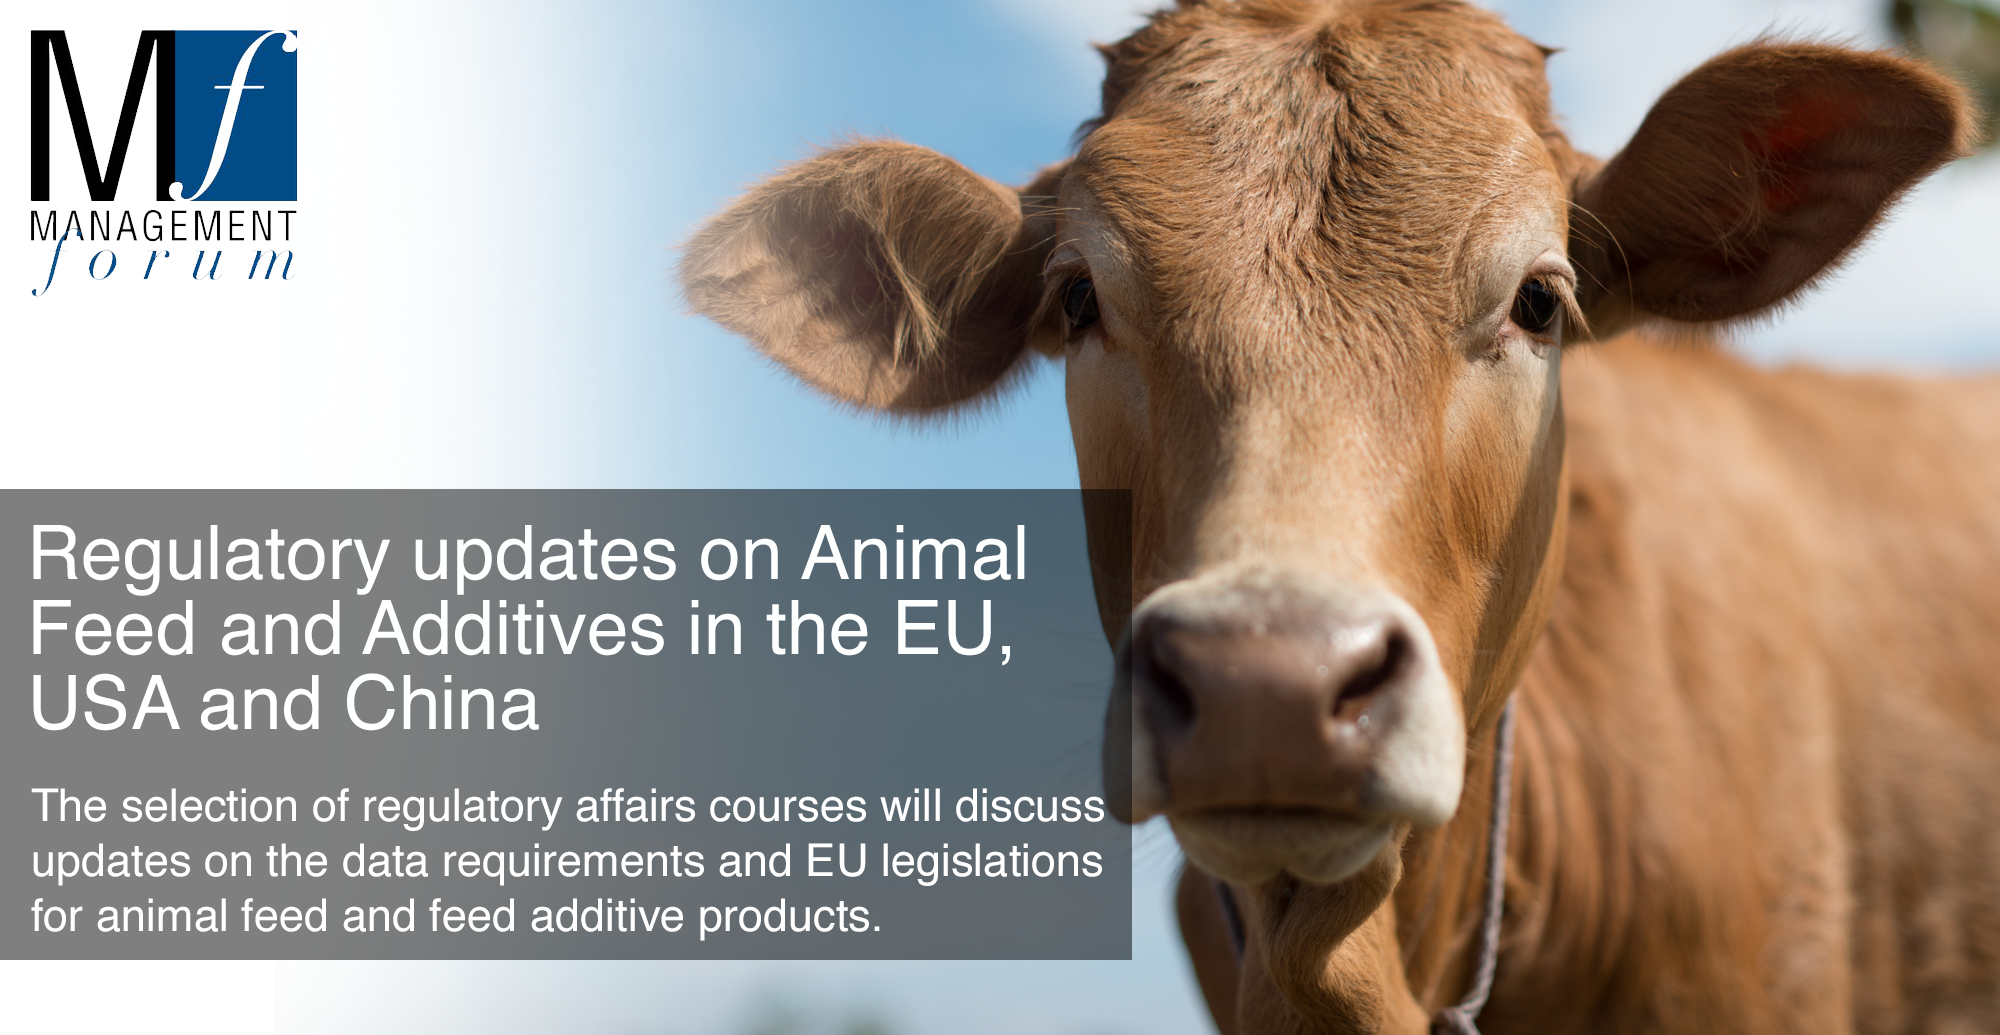 Two-day conference on Regulation Updates on Animal Feed and Feed Additives in the EU, USA and China. 5-6 December 2019